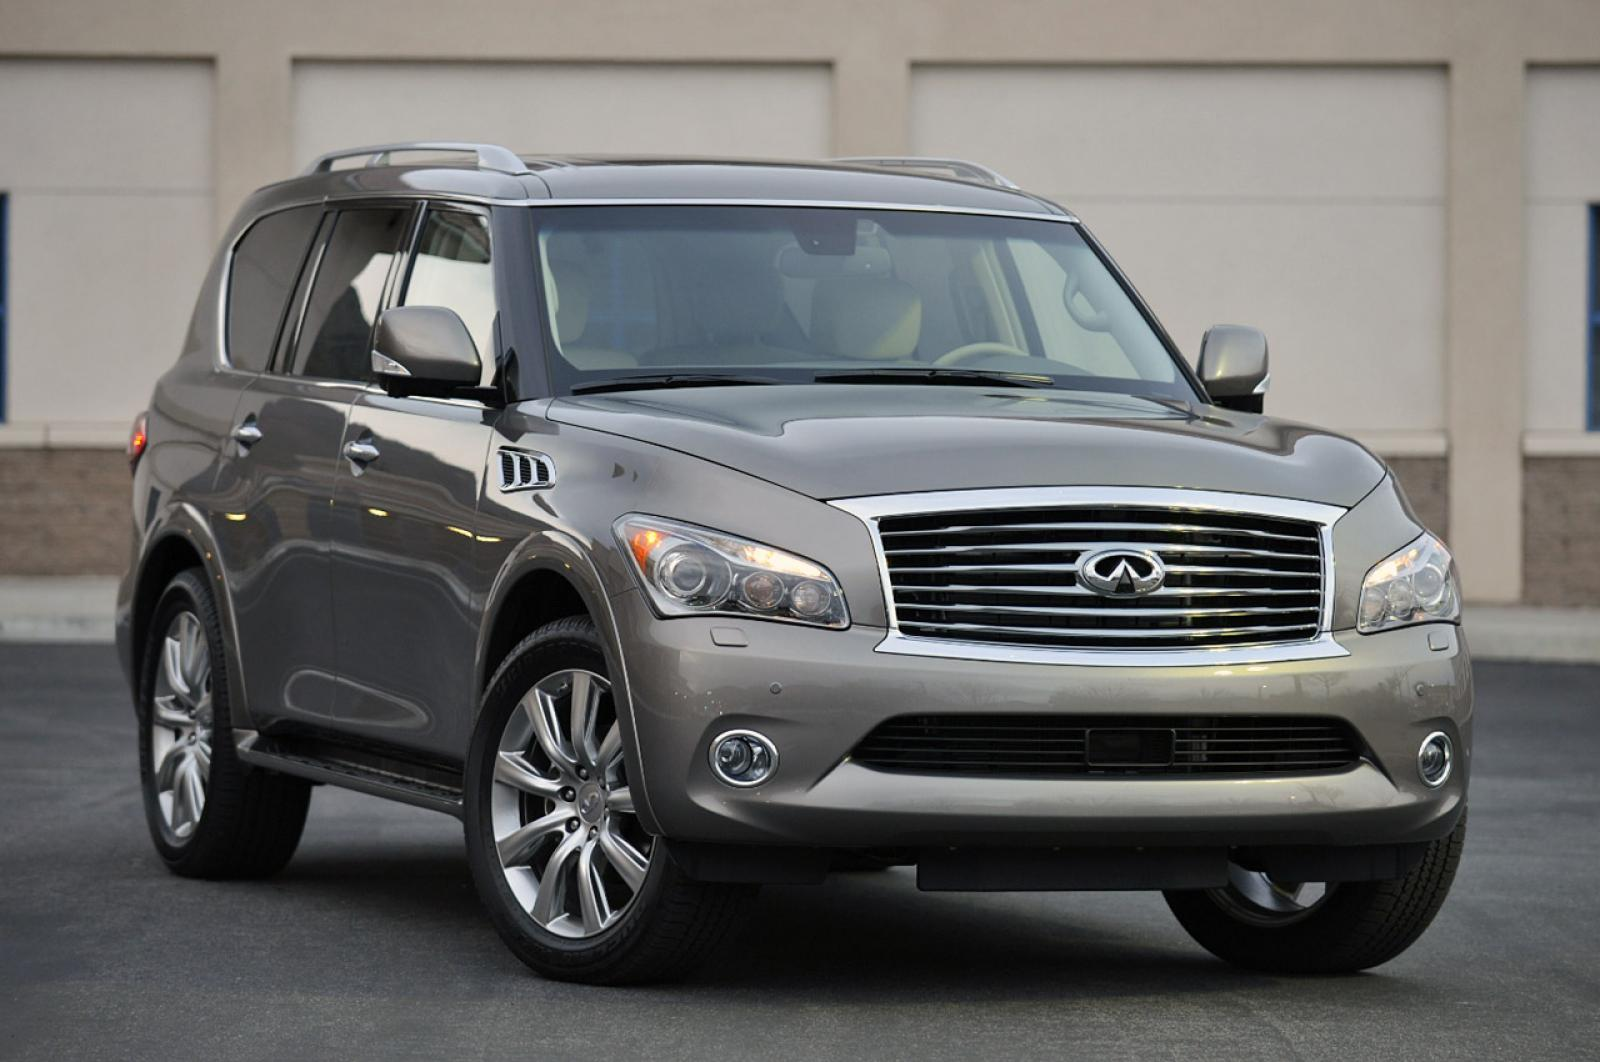 2006 infiniti qx56 custom choice image hd cars wallpaper 2013 infiniti qx information and photos zombiedrive 800 1024 1280 1600 origin 2013 infiniti vanachro choice vanachro Choice Image